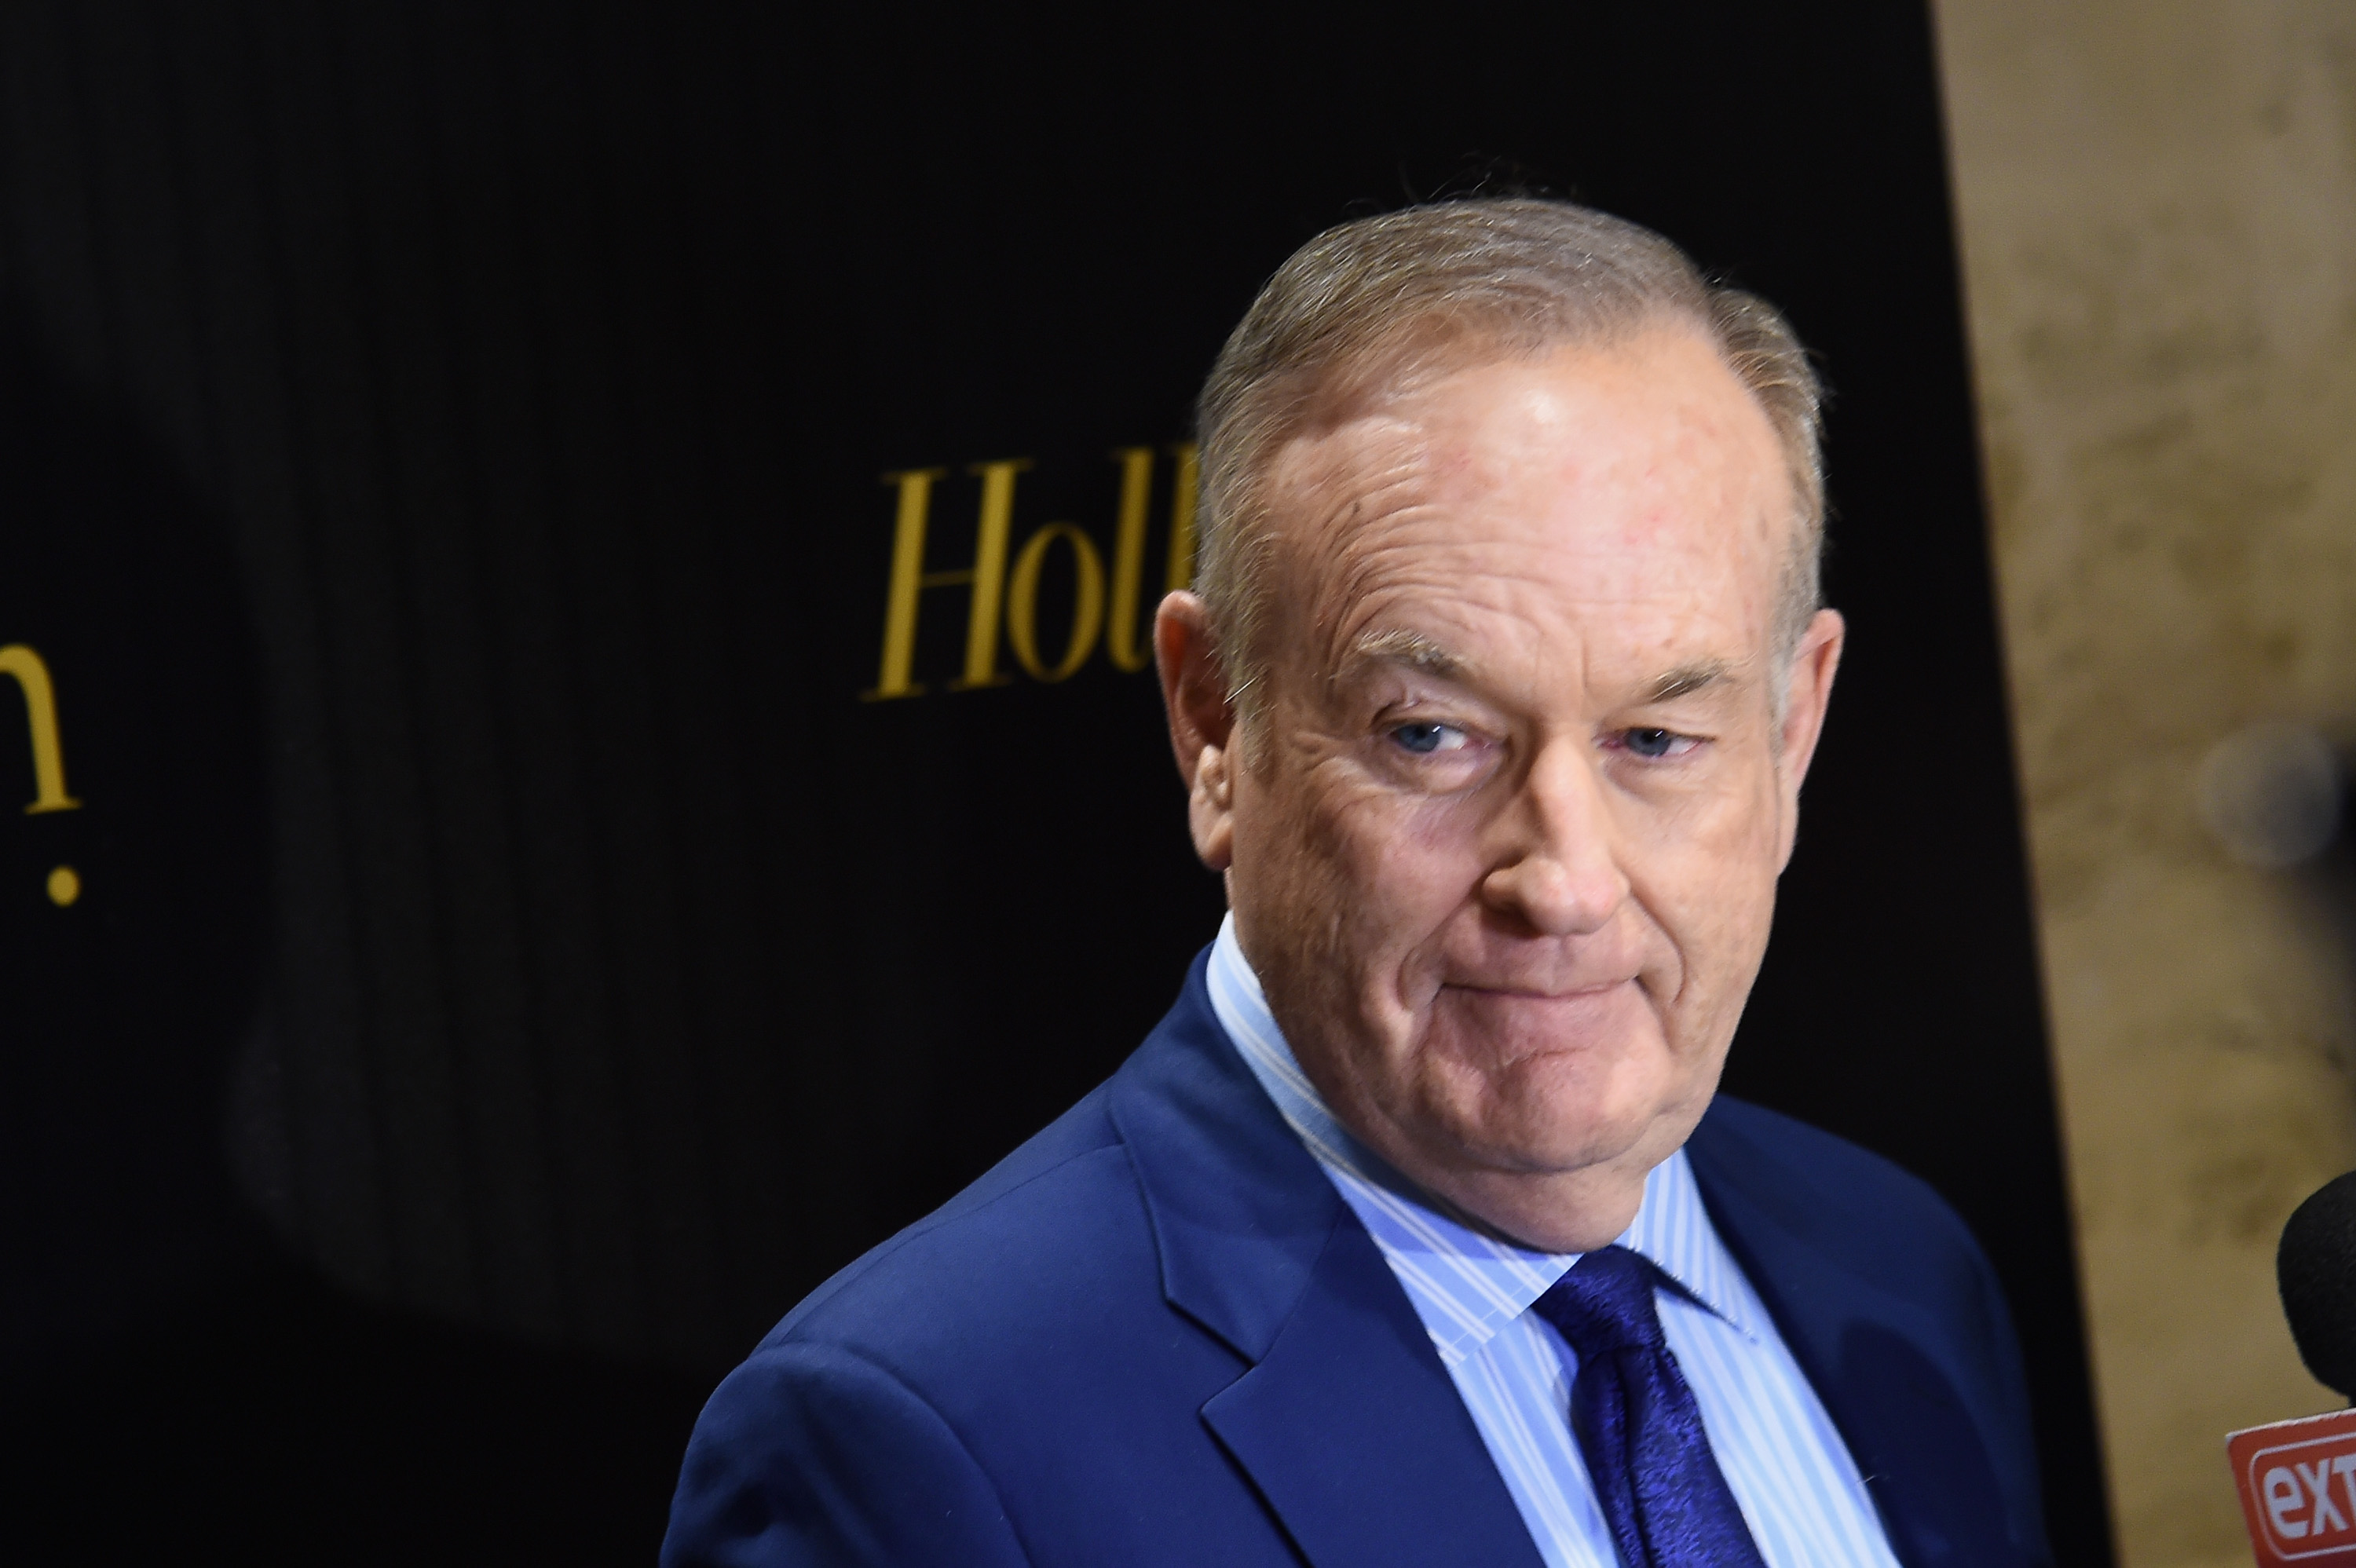 Bill O'Reilly at the  35 Most Powerful People in Media  event by The Hollywood Reporter at Four Seasons Restaurant in New York, Apr. 6, 2016.